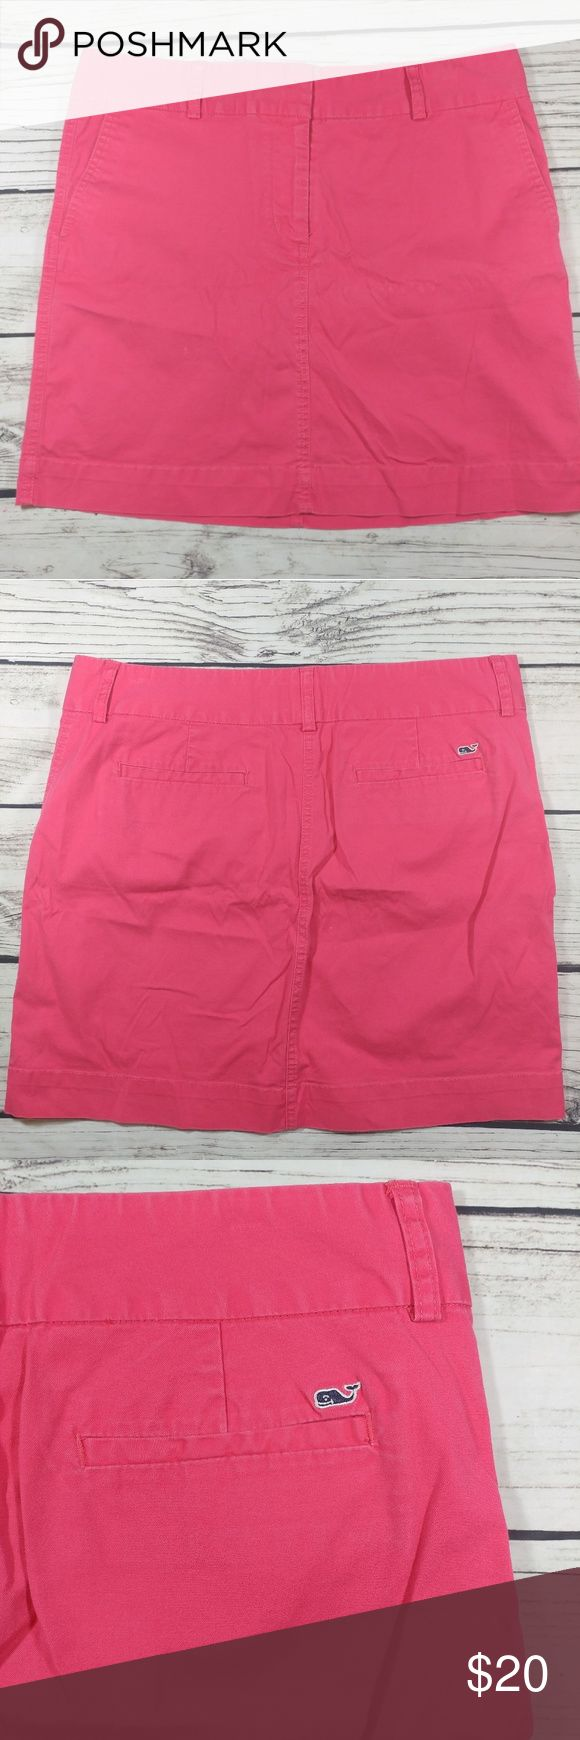 Vineyard vines mini skirt size 12 pink See pictures for measurements Coral pink Stretch skirt Gently used Vineyard Vines Skirts Mini